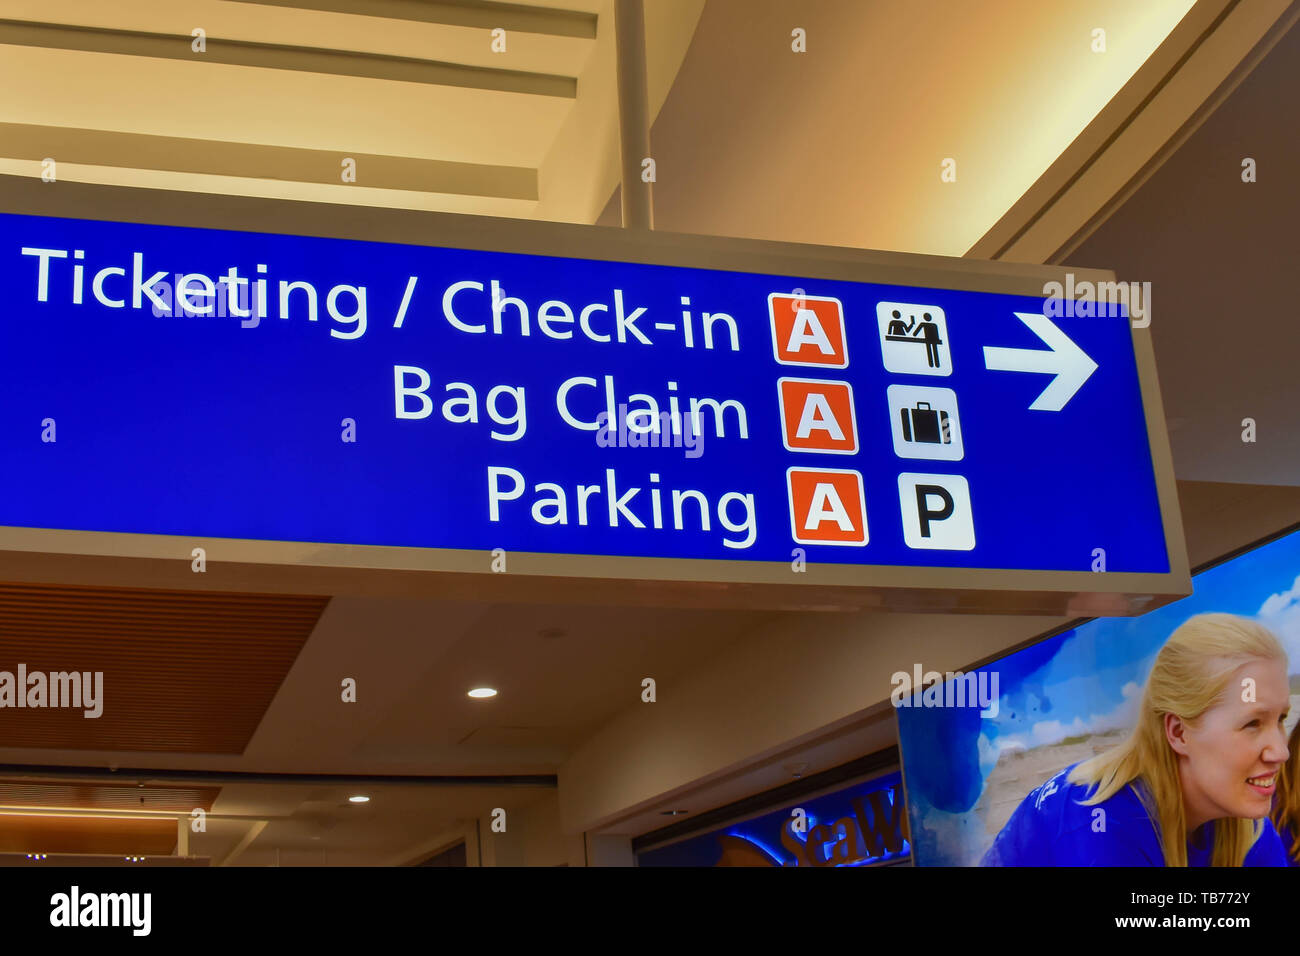 Orlando, Florida.  March 01, 2019. Top view of Terminal B Ticketing and Check-in sign at Orlando International Airport  (2) - Stock Image